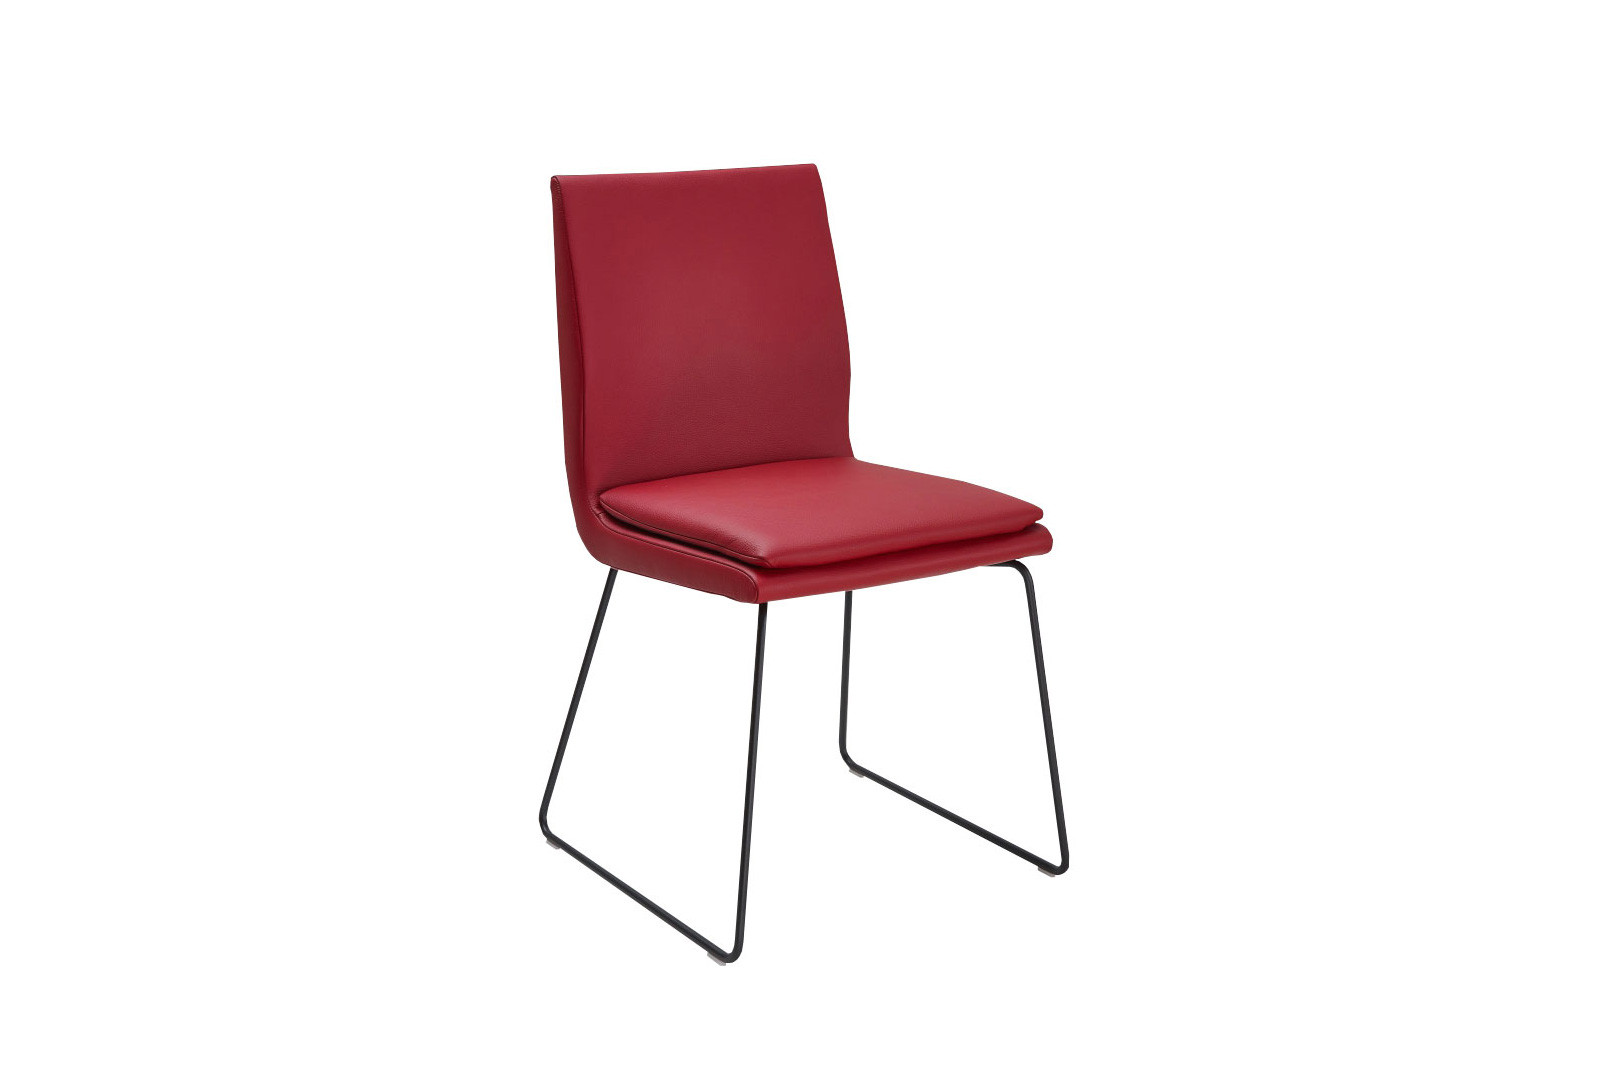 K W Formidable Home Collection Stuhl 6125 In Chianti Rot Mobel